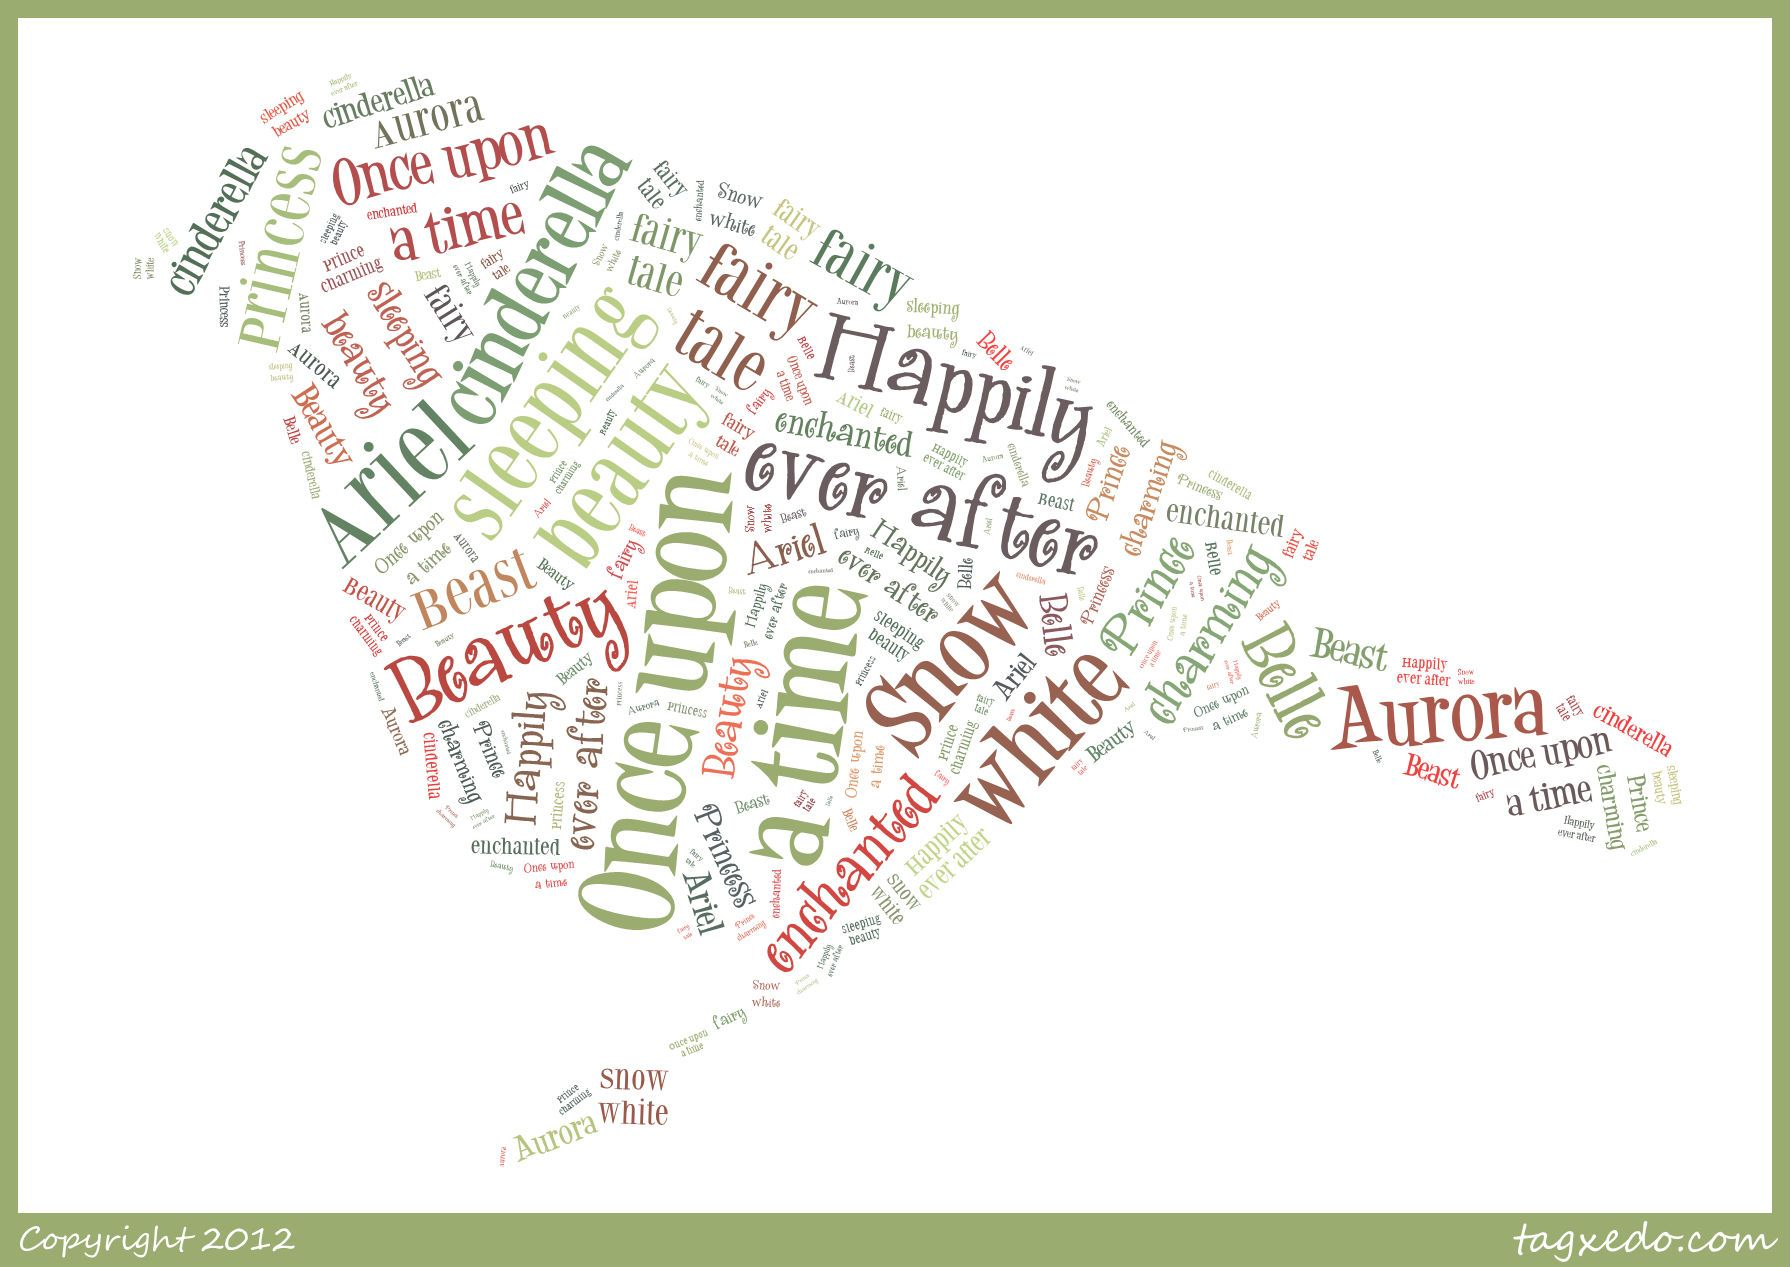 Amazing i just made this word cloud with words from disney i just made this word cloud with words from disney fairytales using tagxedo com im in love with this craft ideas pinterest tagxedo and cra publicscrutiny Choice Image